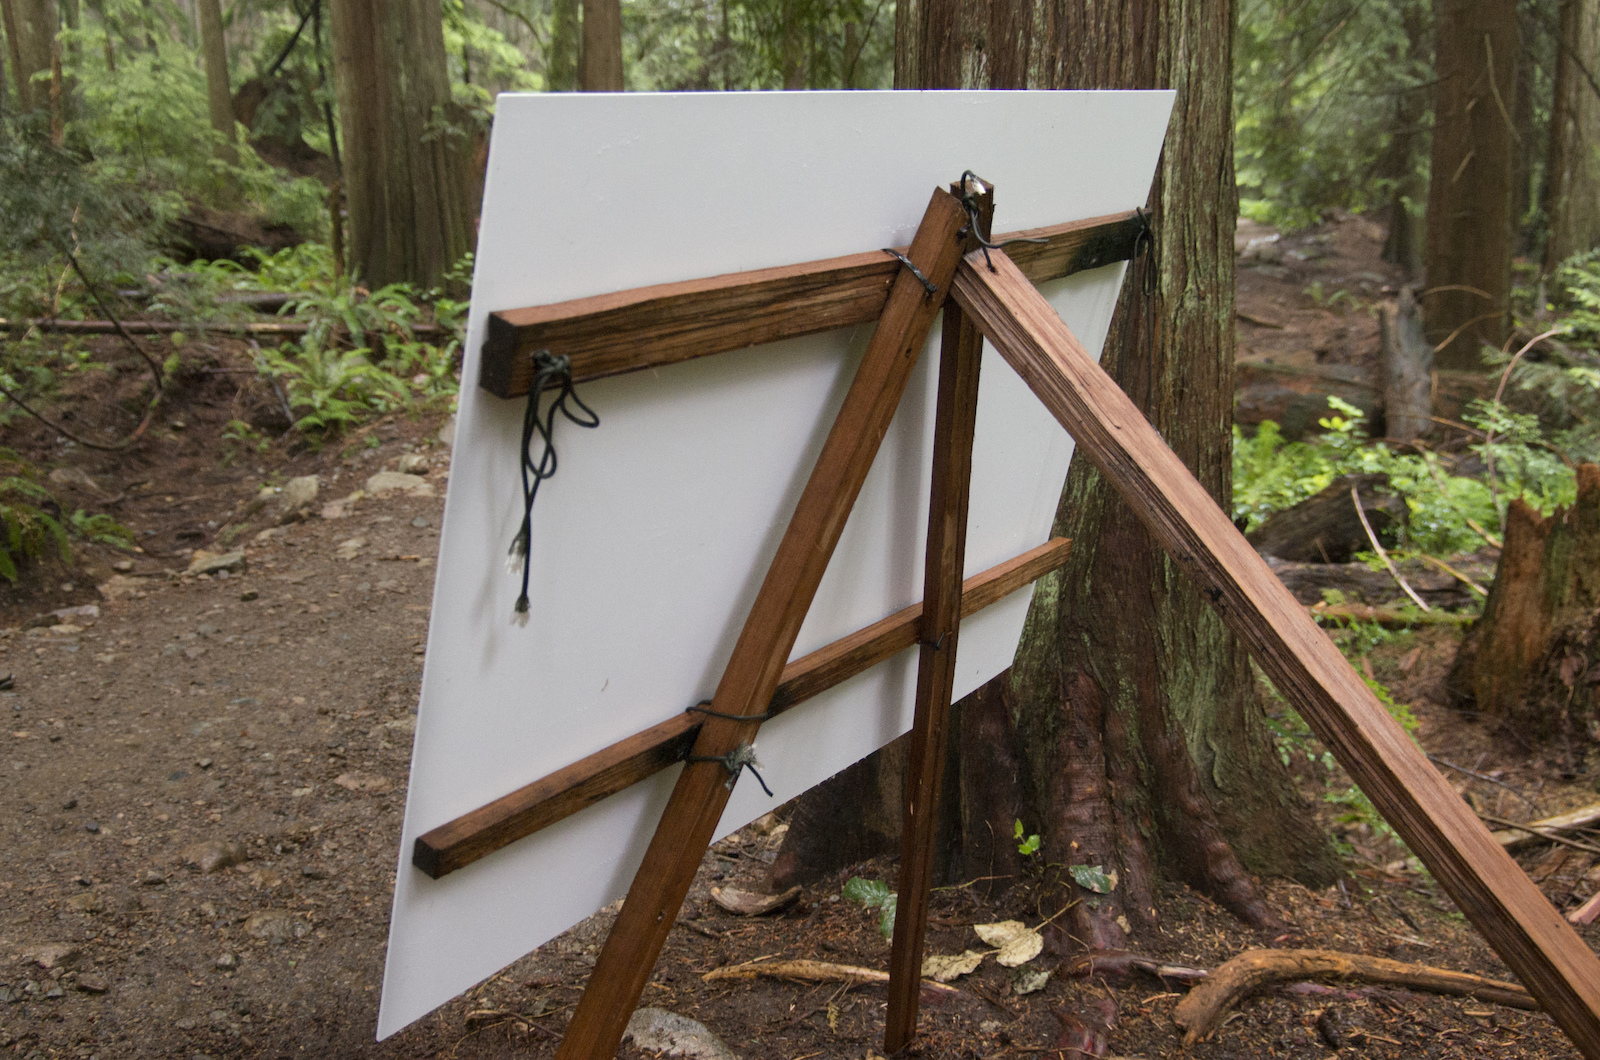 For the installation there were locations where there wasn t a suitable tree so Martin and Penny created easels to hold up the prints.